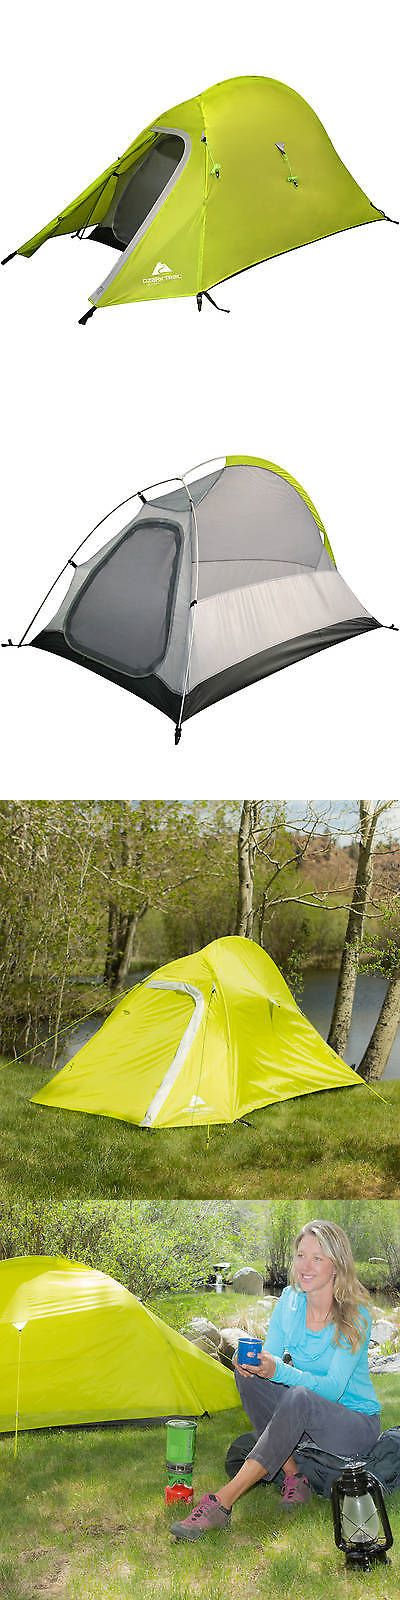 Tents 179010: Ozark Trail Ultra Light Back Packing 4 X 7 X 42 Tent With Full Fly, Sleeps 1 -> BUY IT NOW ONLY: $47.12 on eBay!